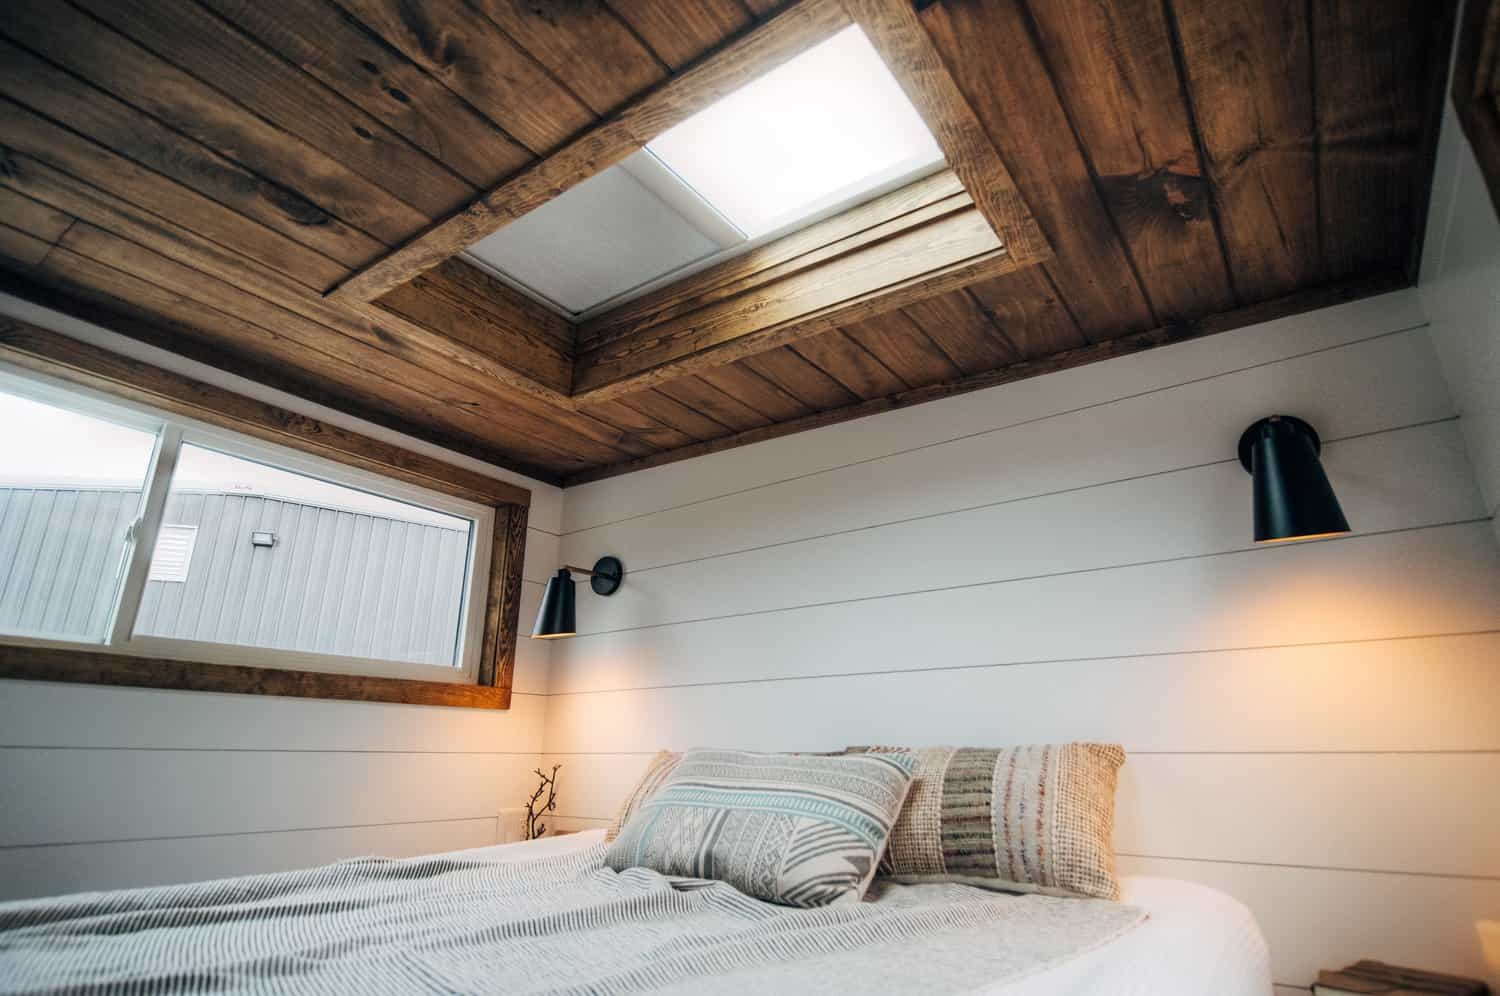 Rustic bedroom loft in a tiny home with skylight